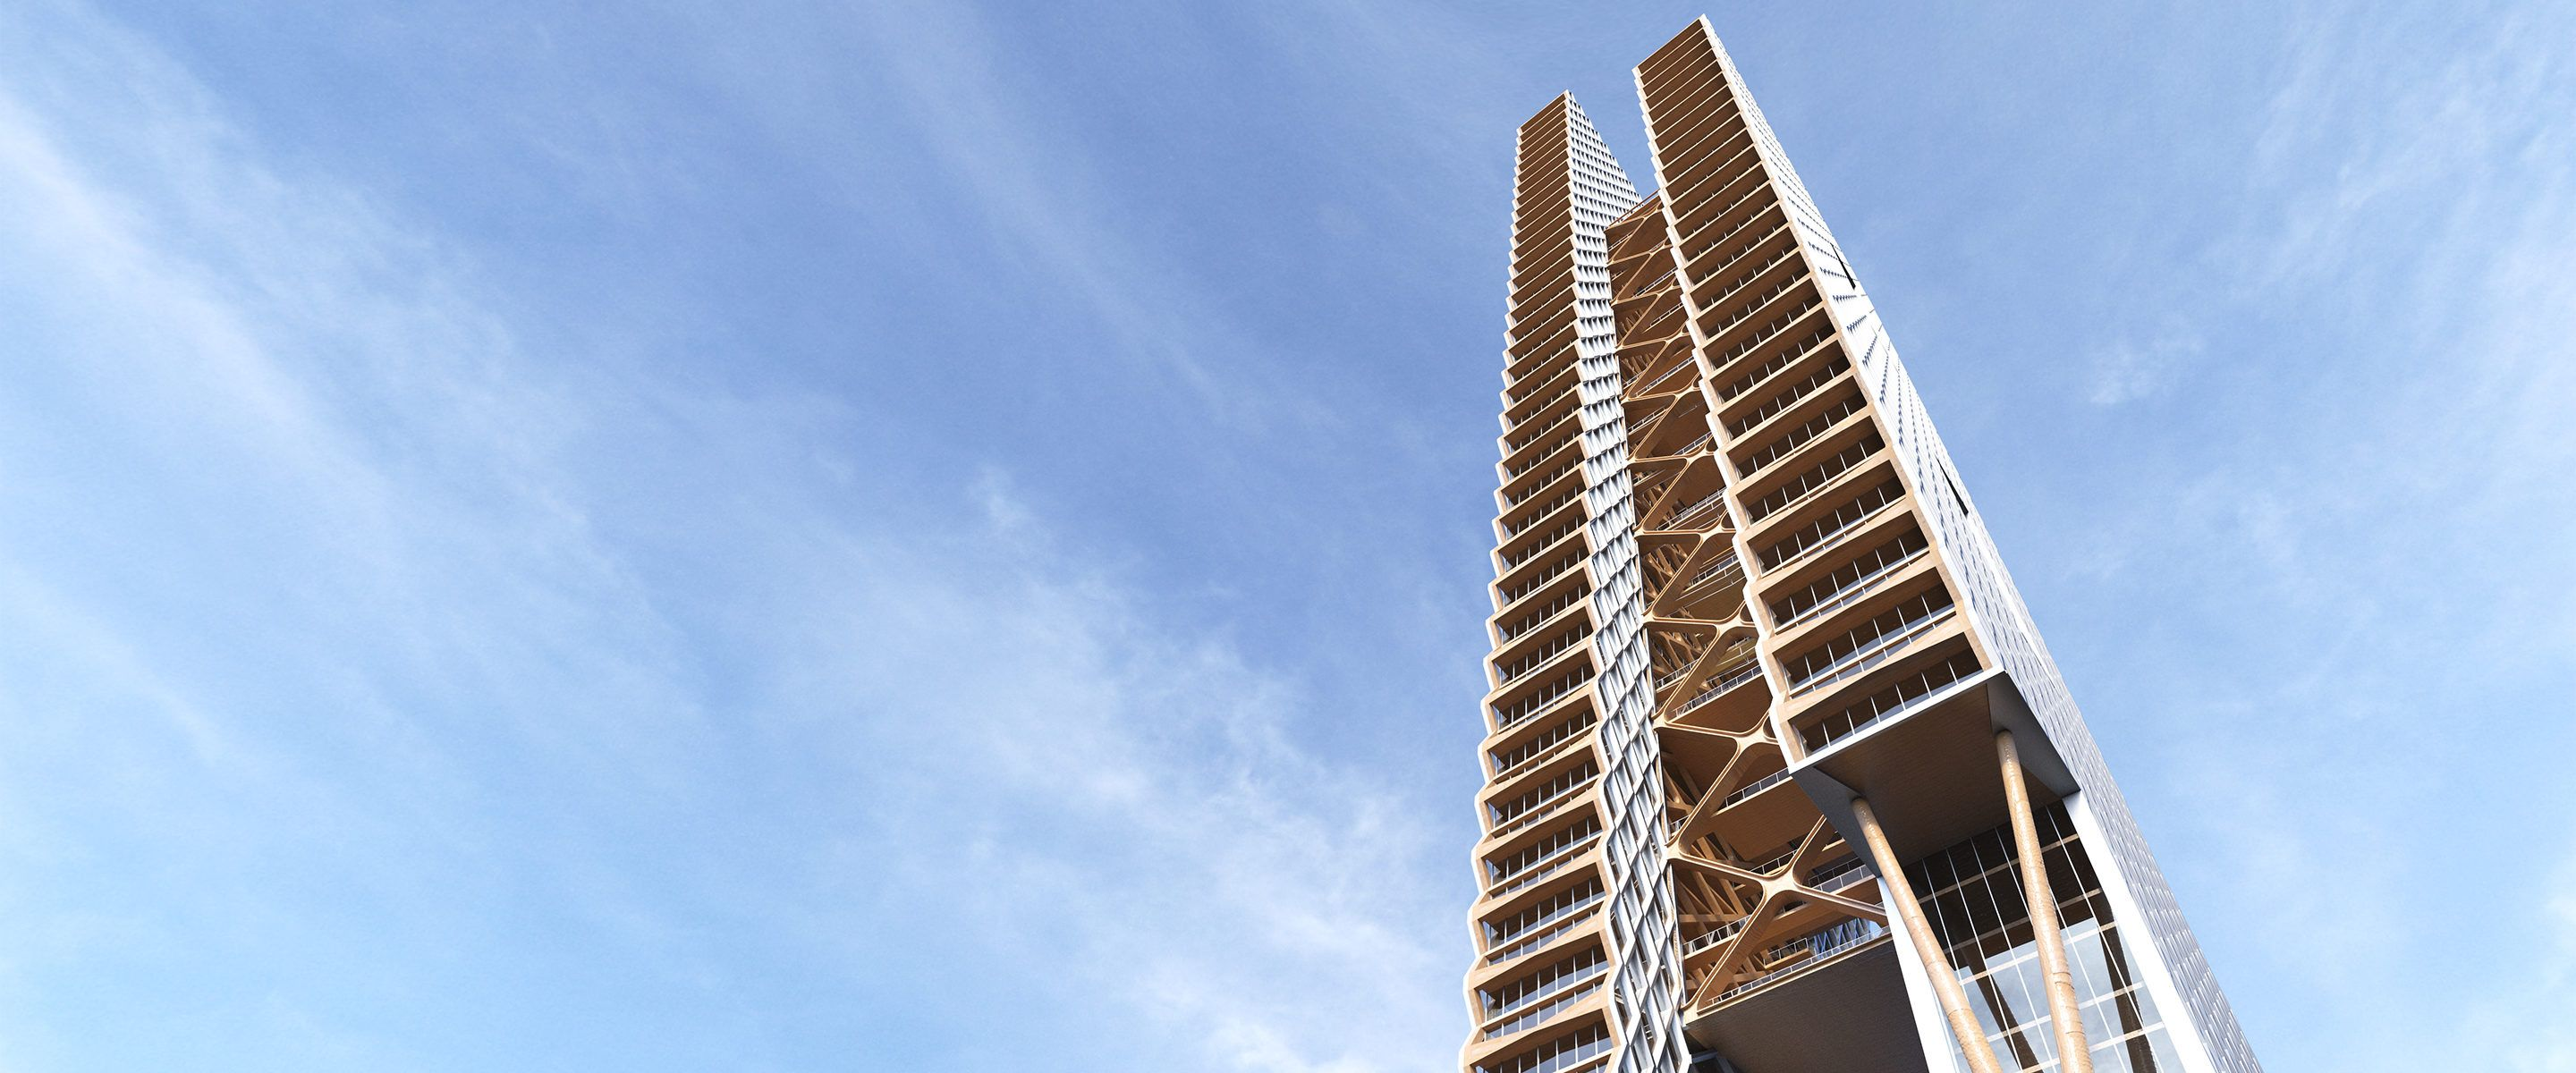 Mass Timber, Not Steel, Is the Future of Construction